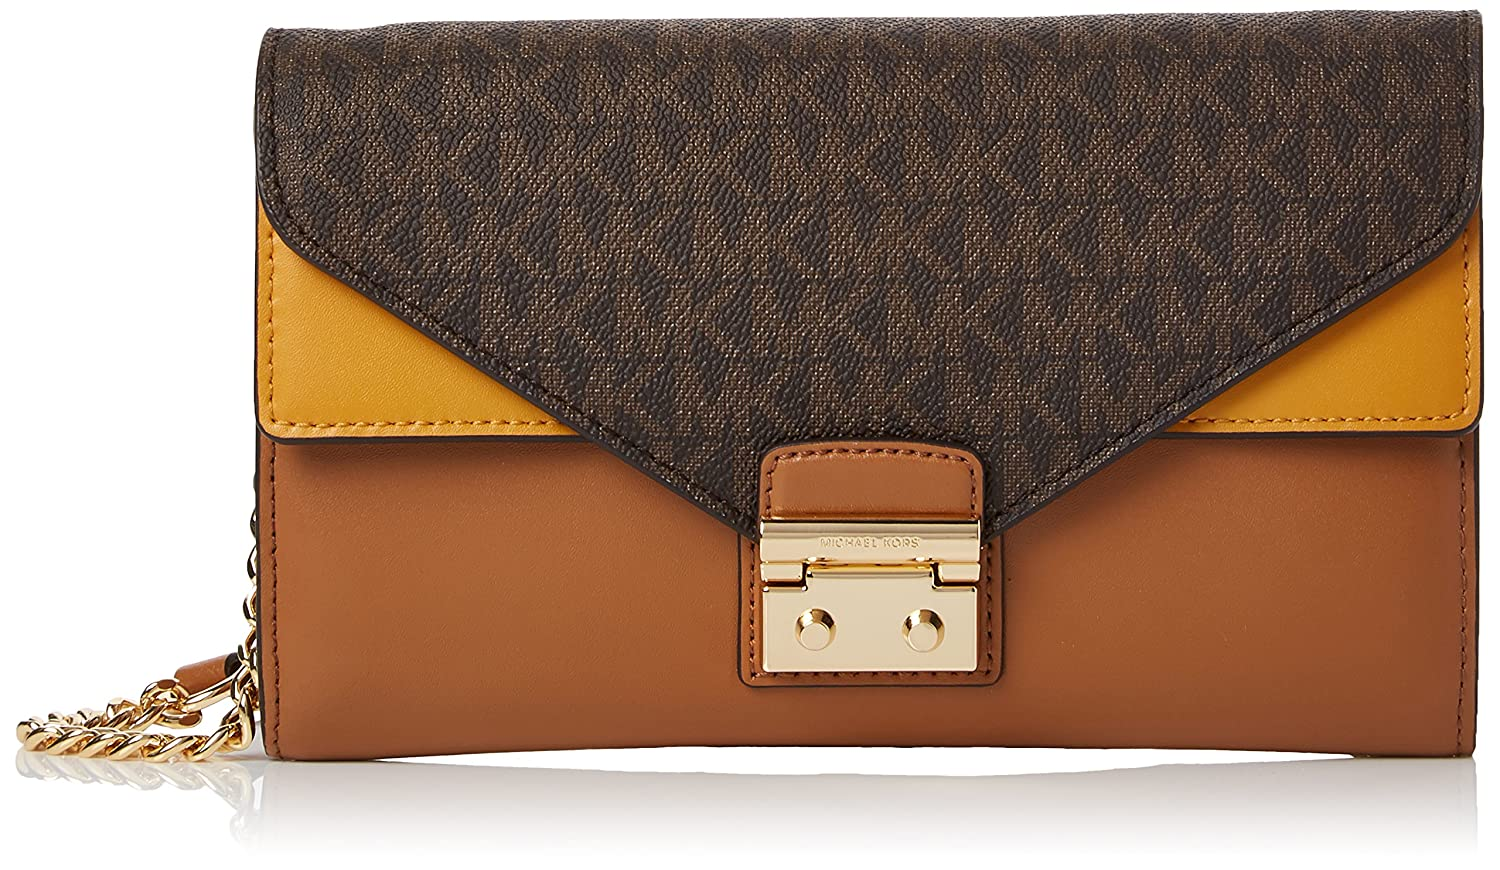 f67092916064 Amazon.com: Michael Kors Sloan Large Envelope Wallet On A Chain Bicolor  King Leather (Brn/acr/mrgl): Clothing